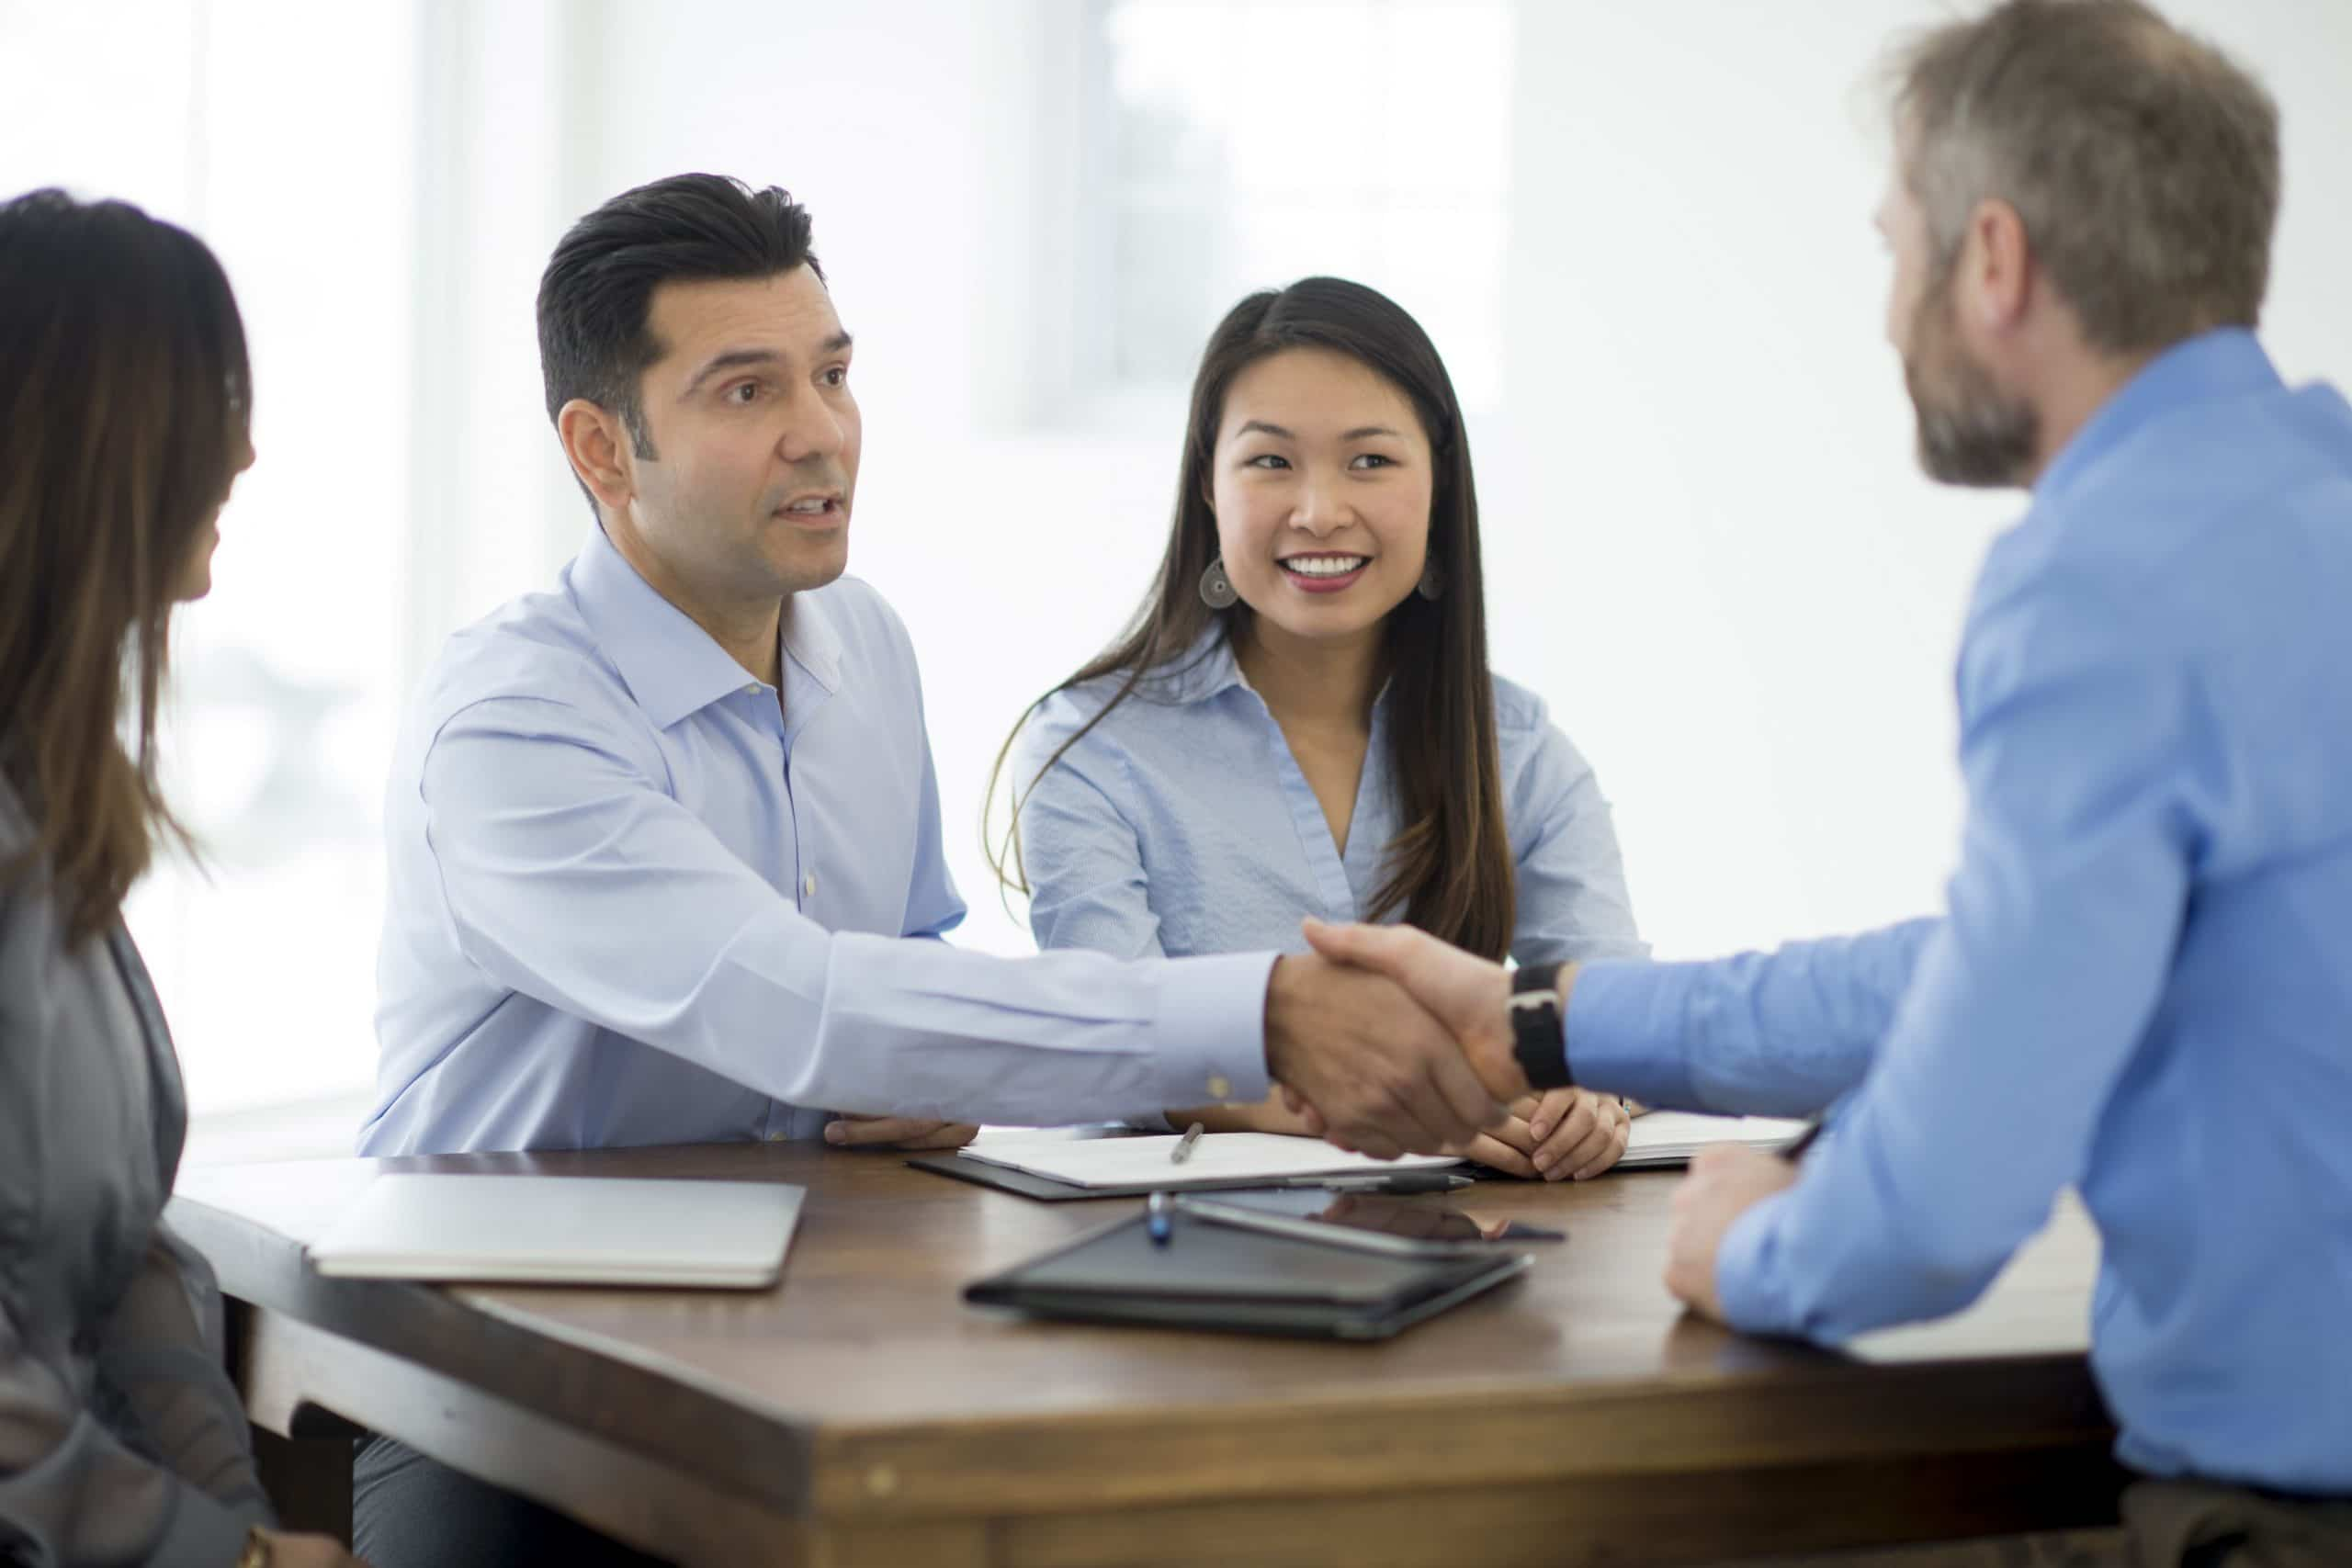 interviews tips Need interview tips and advice for acing your next job prospect appointment in 2018 check out dozens of our best advice and tips for interviews, including preparation, dress, during the interview, phone and skype interviews, alleviating nervousness and anxiety, and much more.